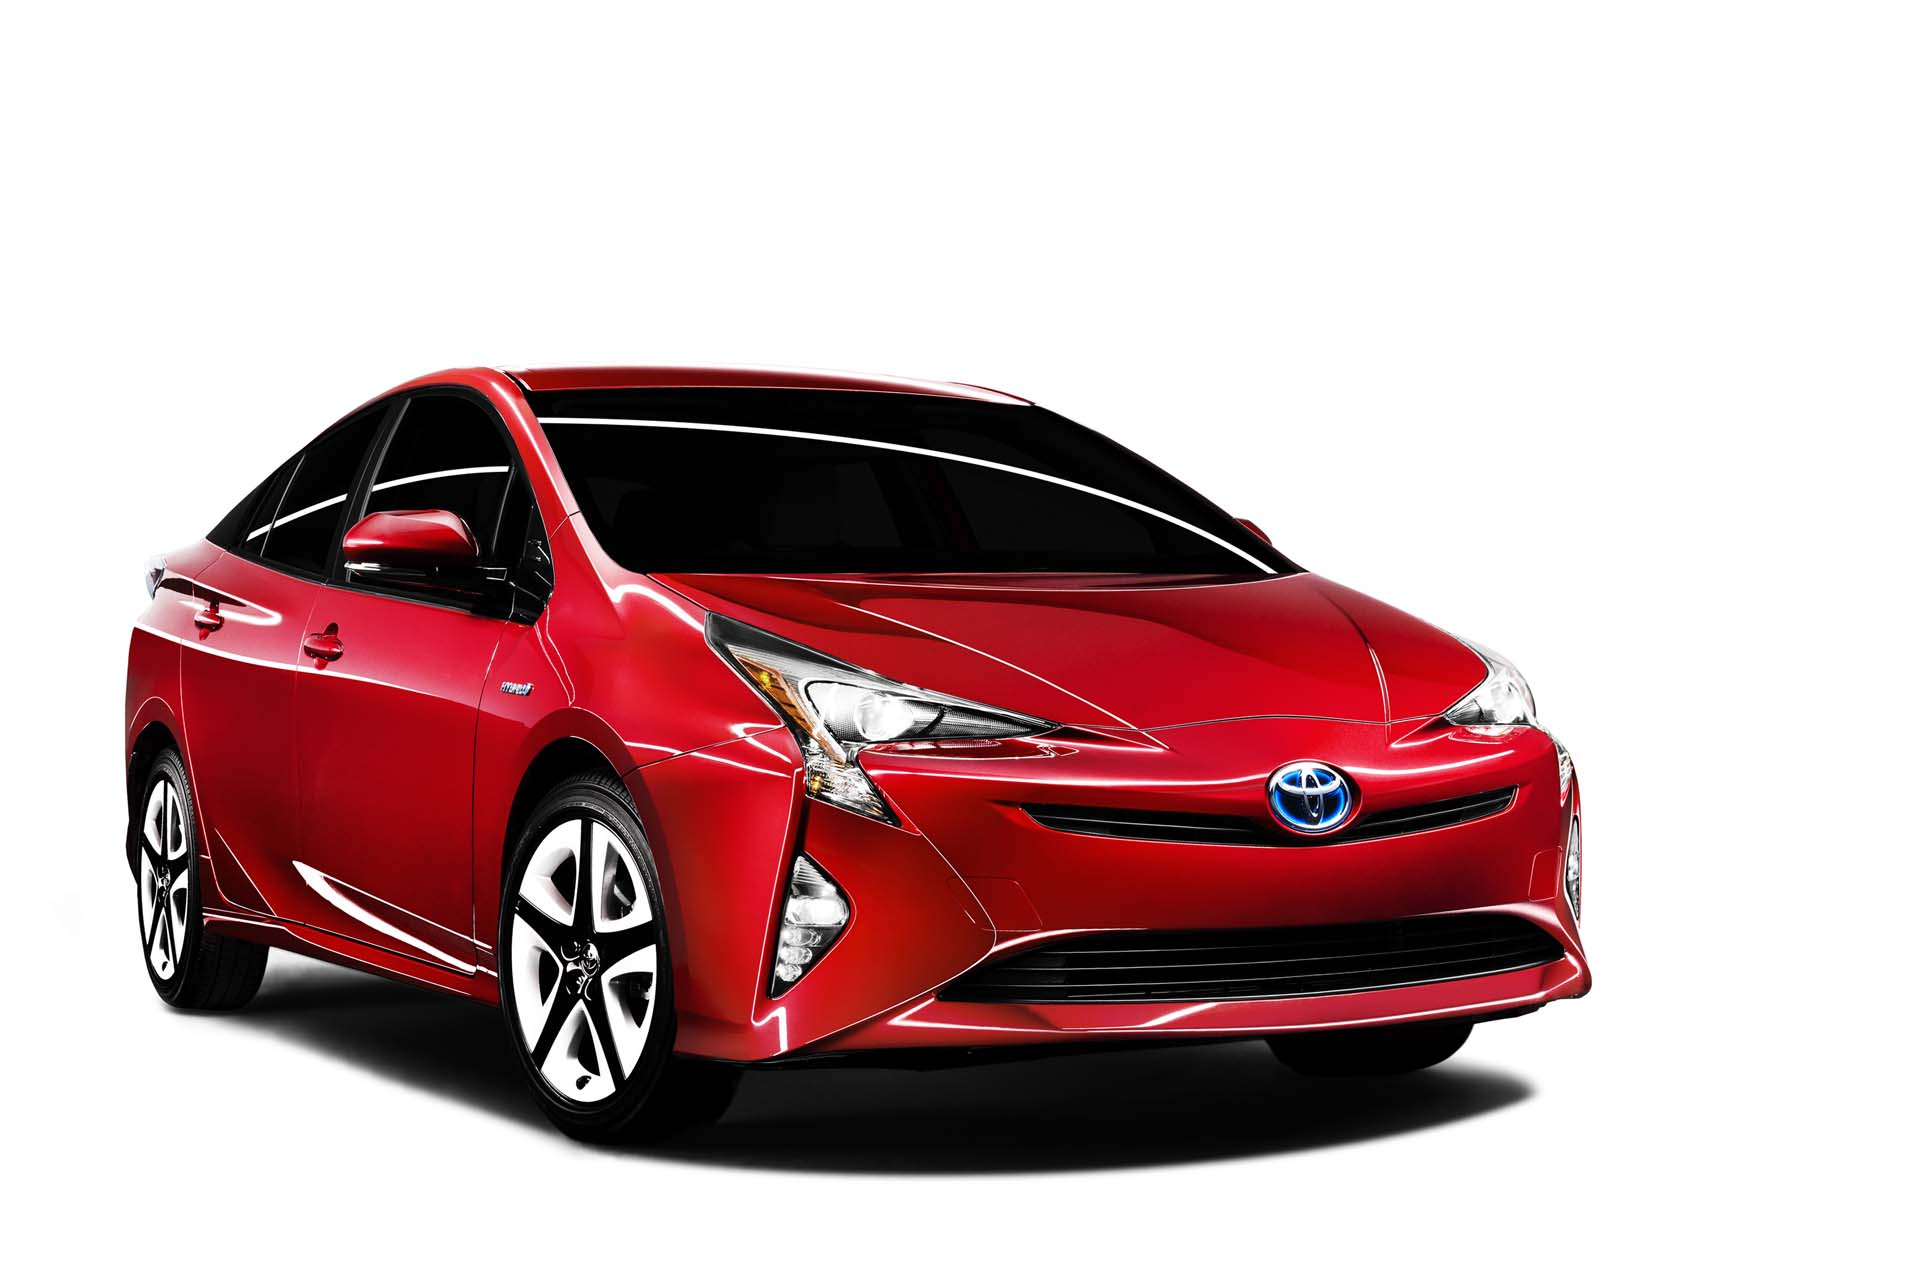 """""""What if you have to change out the battery?"""" The Prius had it tough for a while, but no other hybrid vehicle sells as well. It's spawned a whole trio of Prii, from small to large. A new one is on the way, with higher fuel economy than ever, and a bit more of a sporty look (a bit too sporty, if we're honest). Most of that quirky hybrid nature is still there, and even with gas prices at an all-time low, expect the Prius to sell well and save on fuel. It's what it does."""